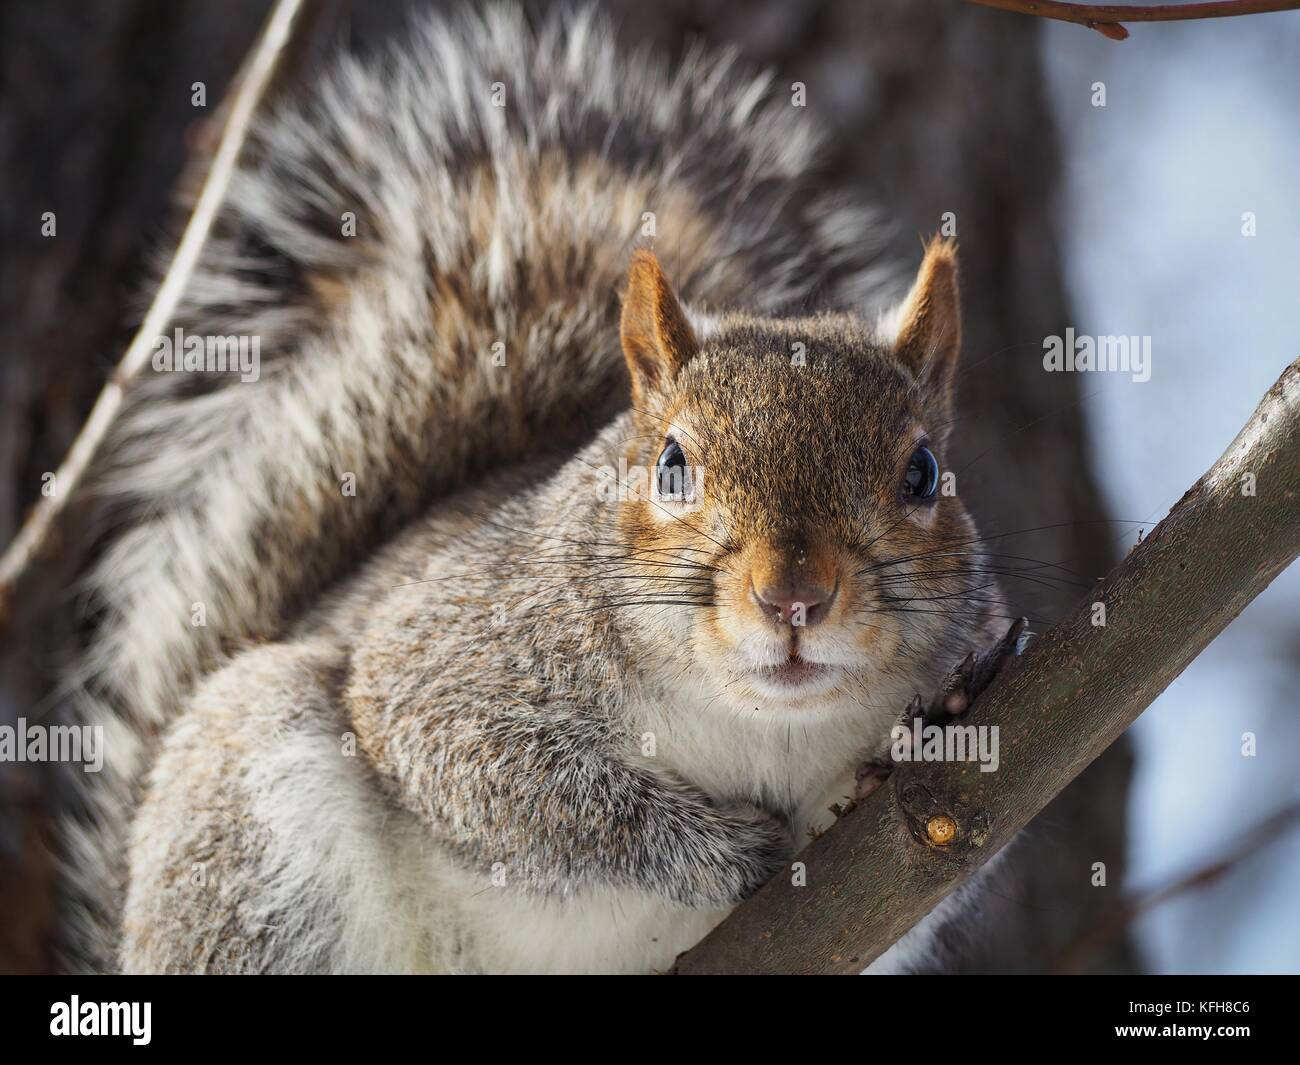 Eastern grey squirrel sitting on a tree, looking into the camera - Stock Image